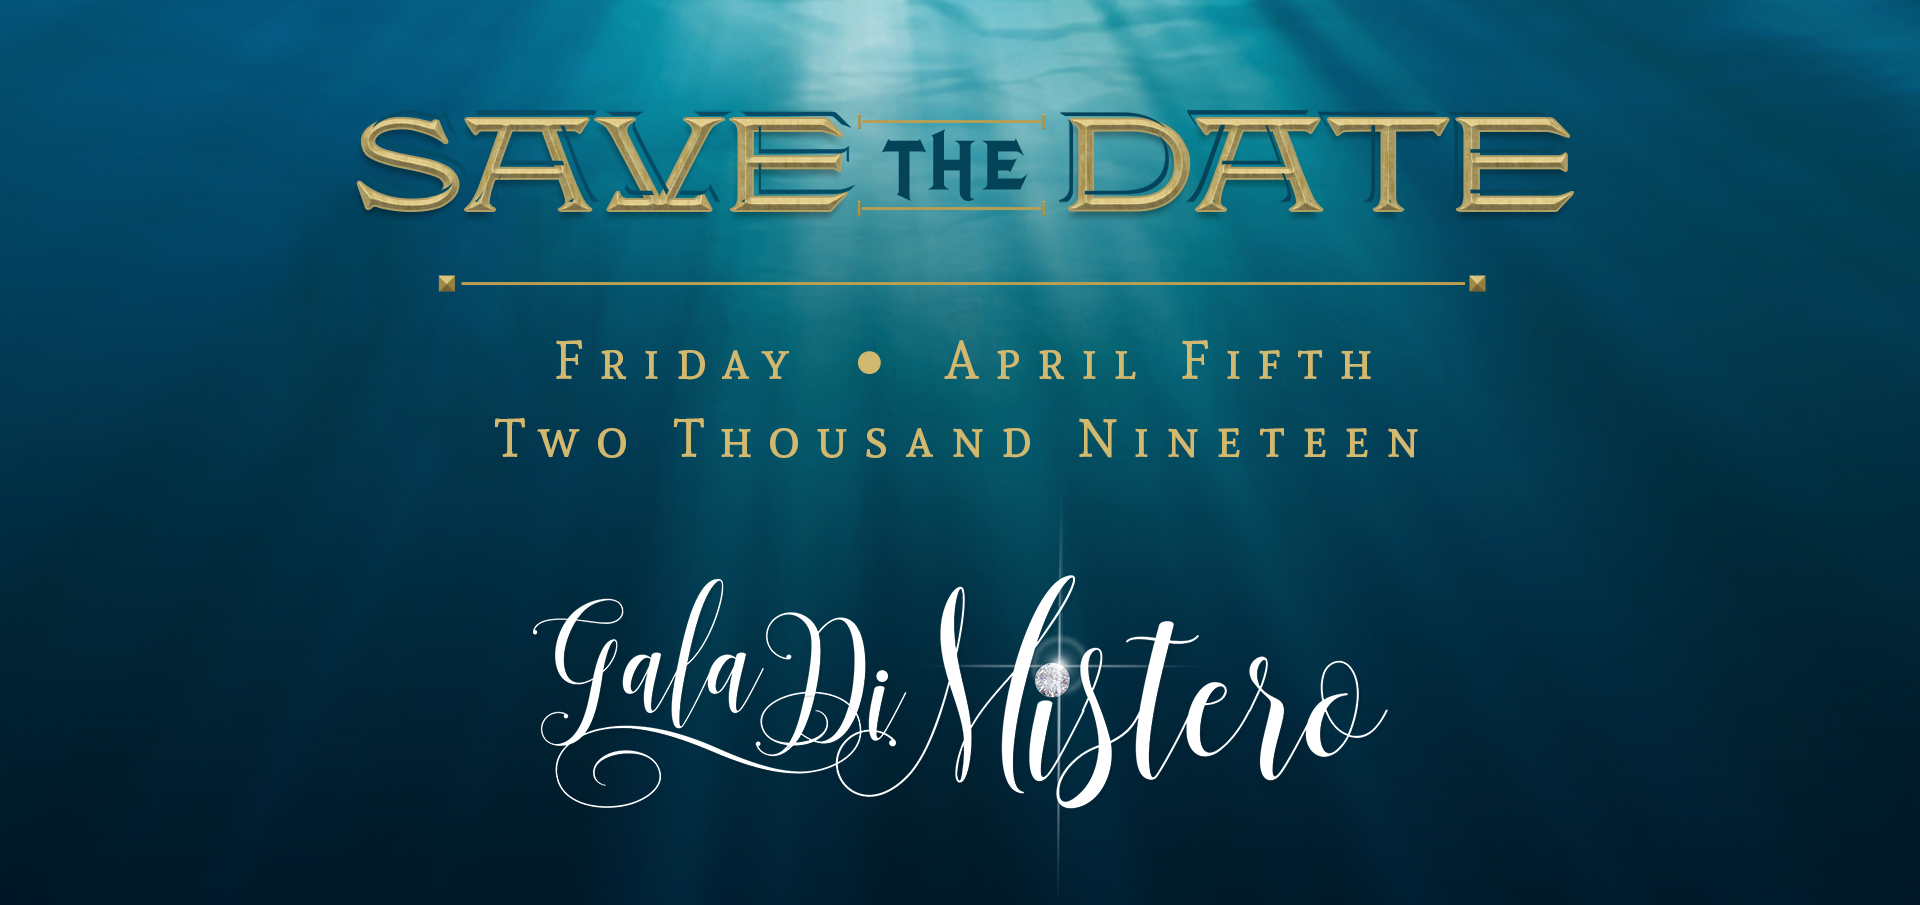 3rd Annual Gala Di Mistero set for April 5th